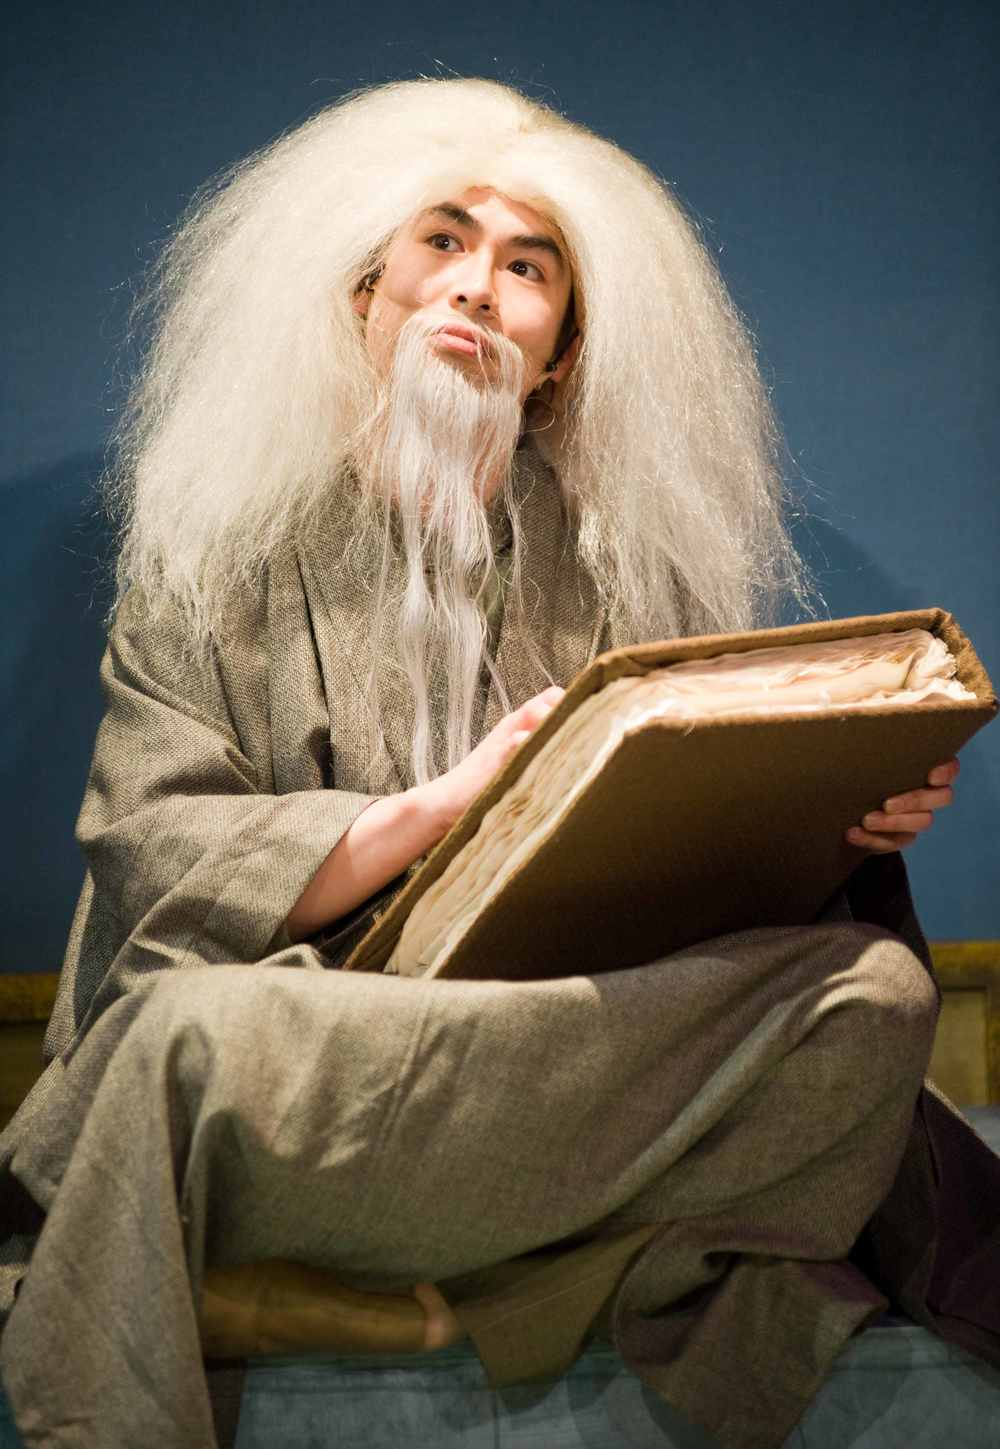 Sean Fenton as The Old Man of the Moon